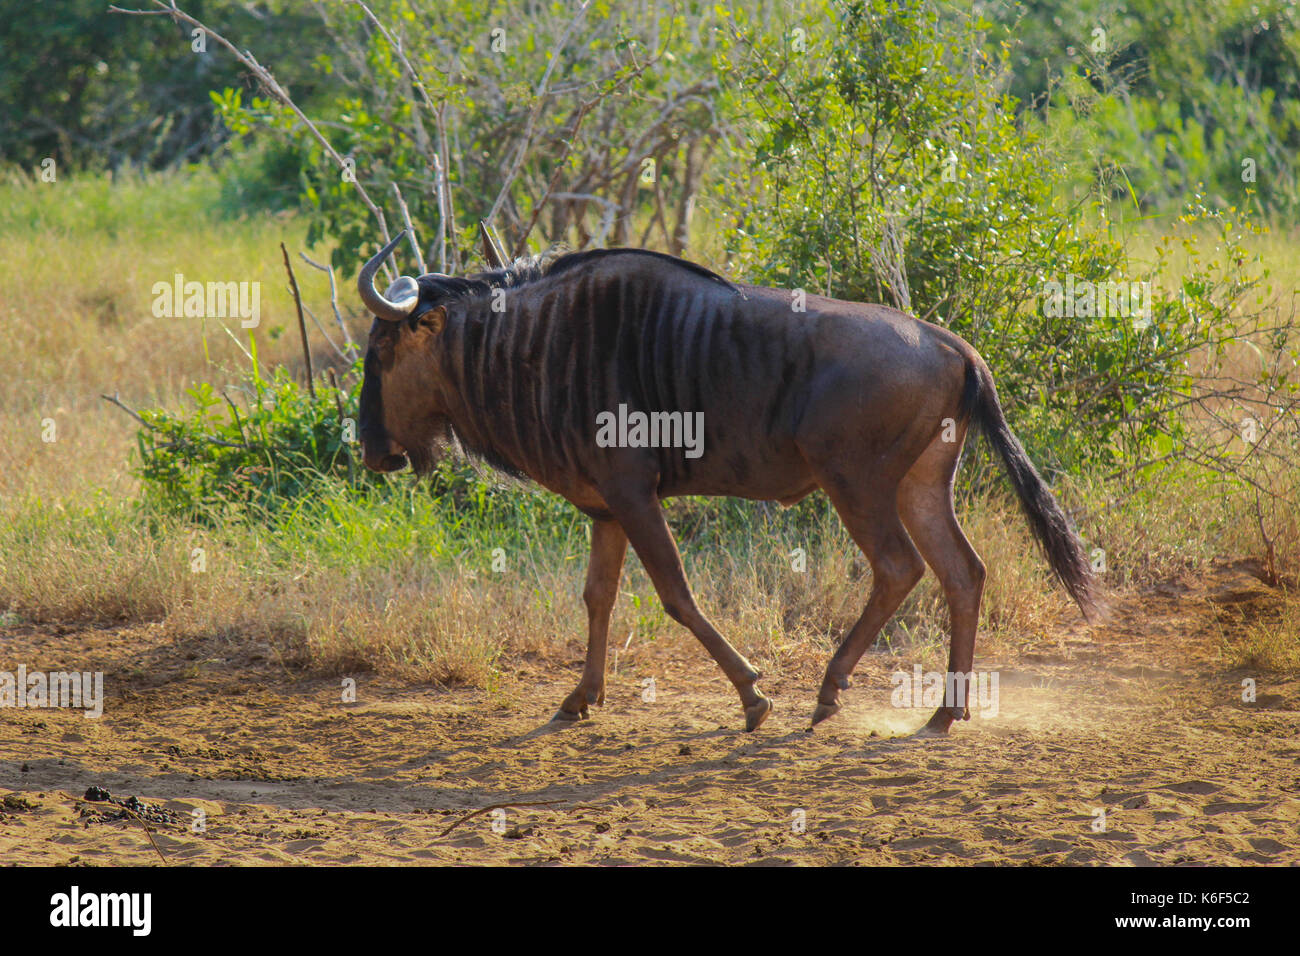 Wildebeest walking in Kissama National Park - Angola Stock Photo